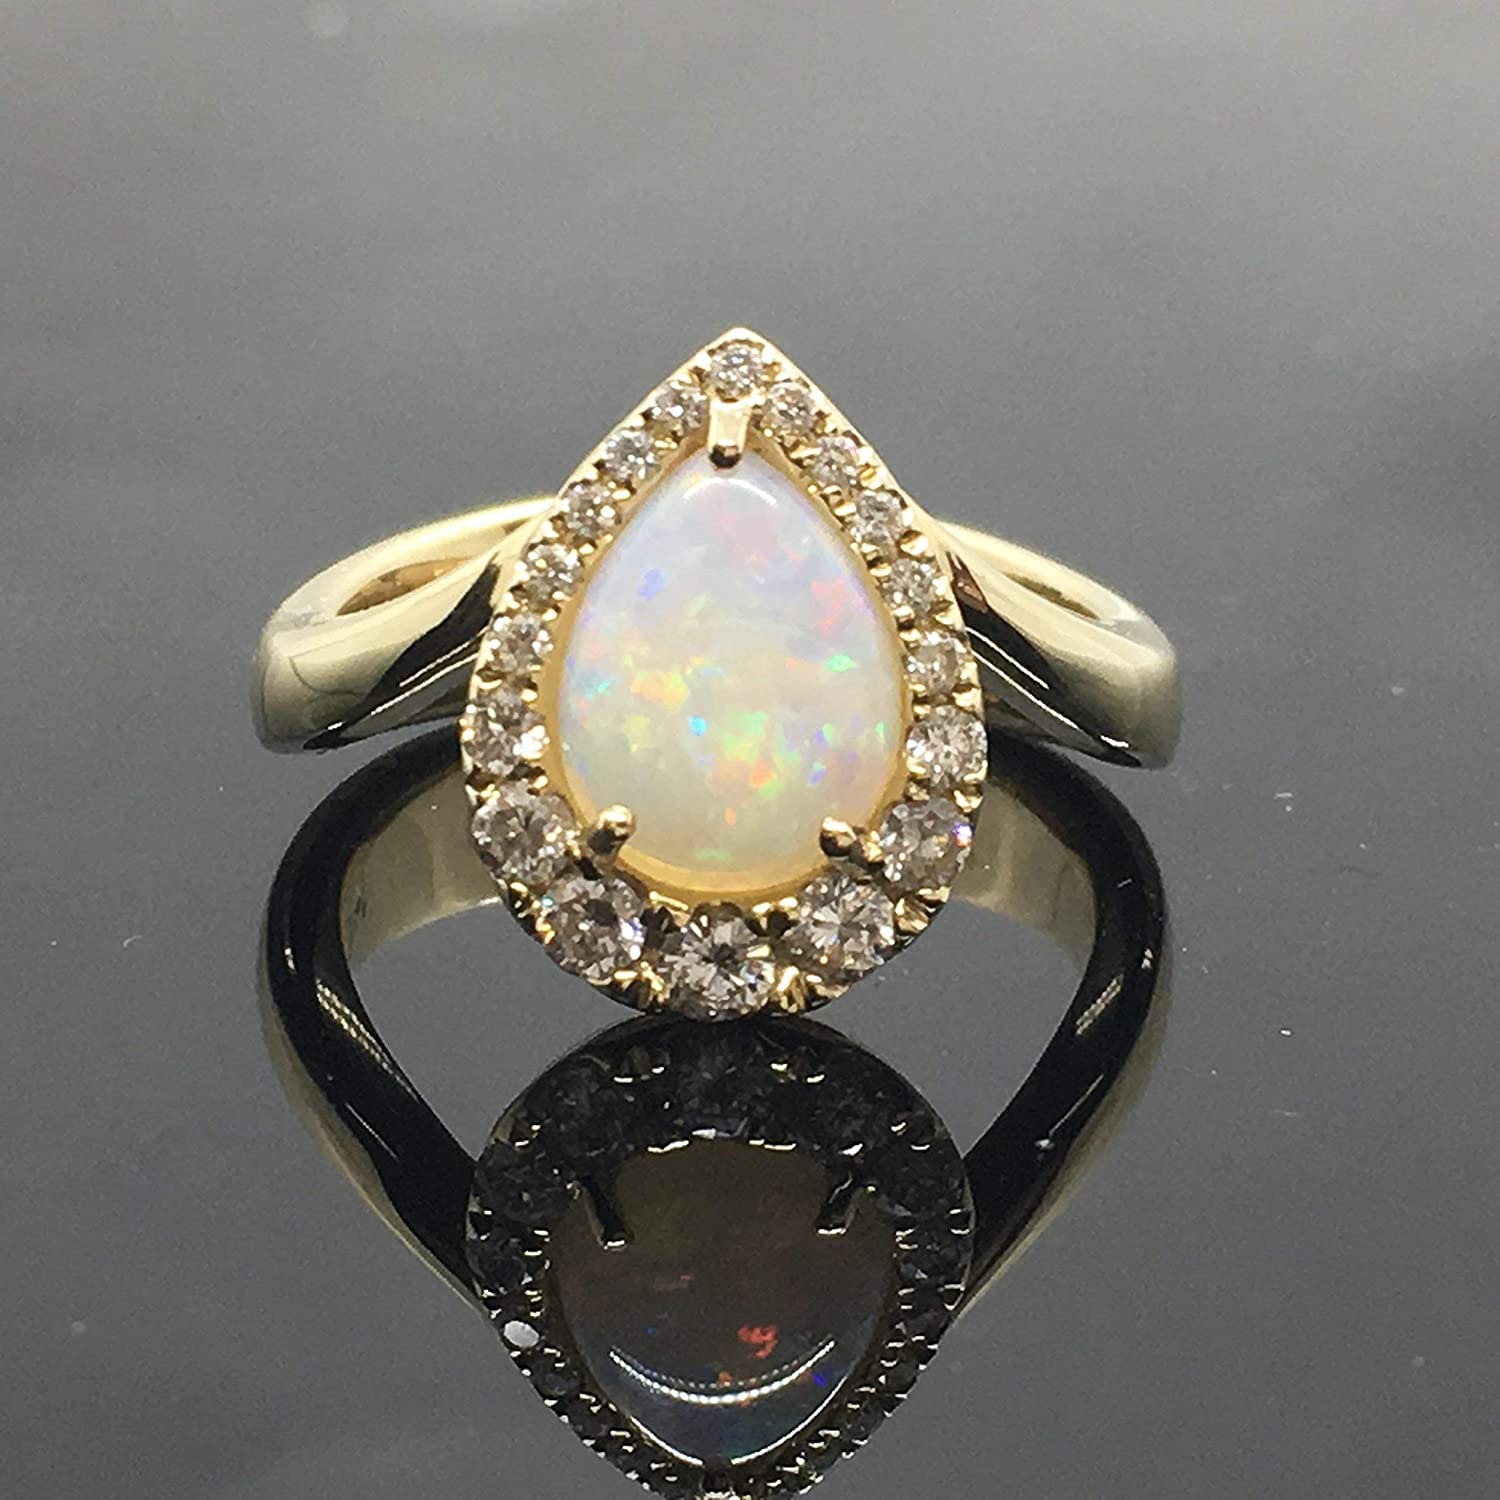 Amazon Com Pear Shape Australian Opal And Diamond Engagement Ring Solid 14k Yellow Gold Pear Shaped Diamond Halo Opal Engagement Ring 14k White Opal Promise Ring Handmade